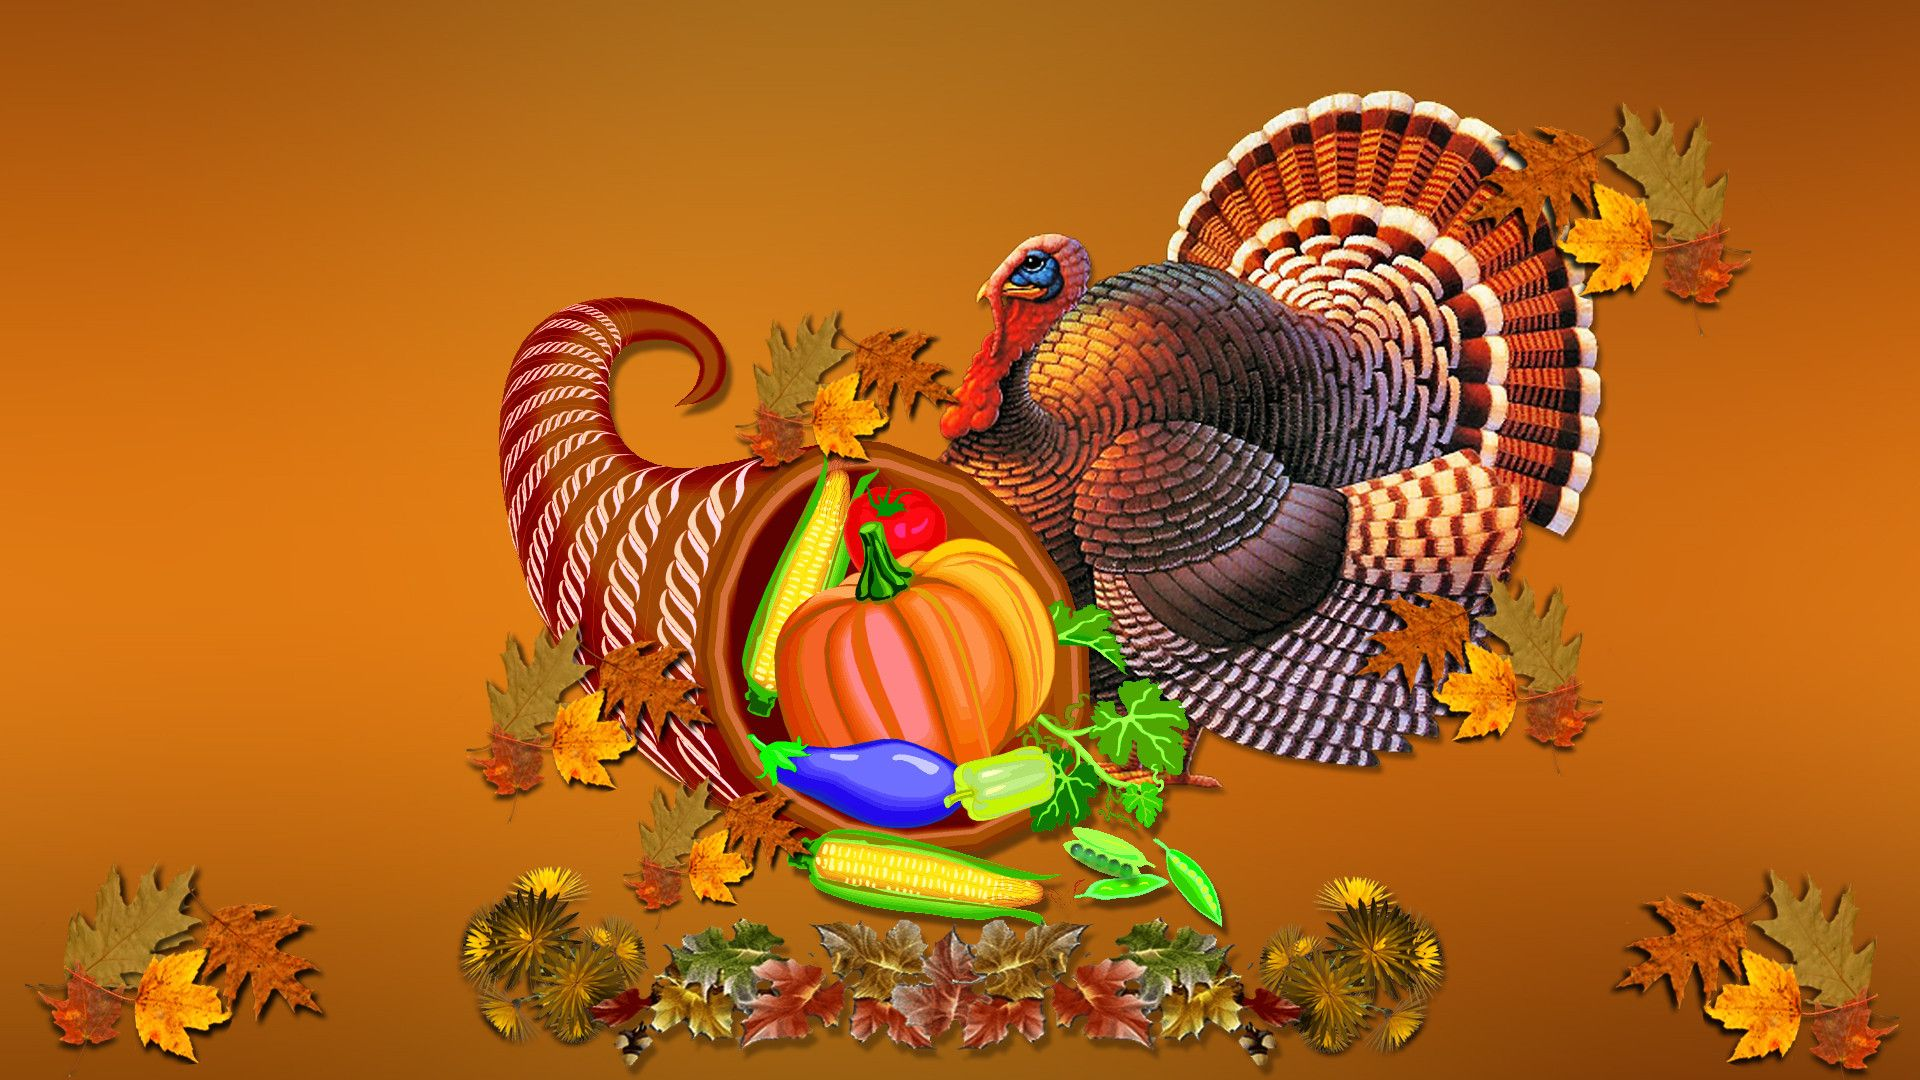 3D Thanksgiving Wallpaper 3D Thanksgiving HD Backgrounds